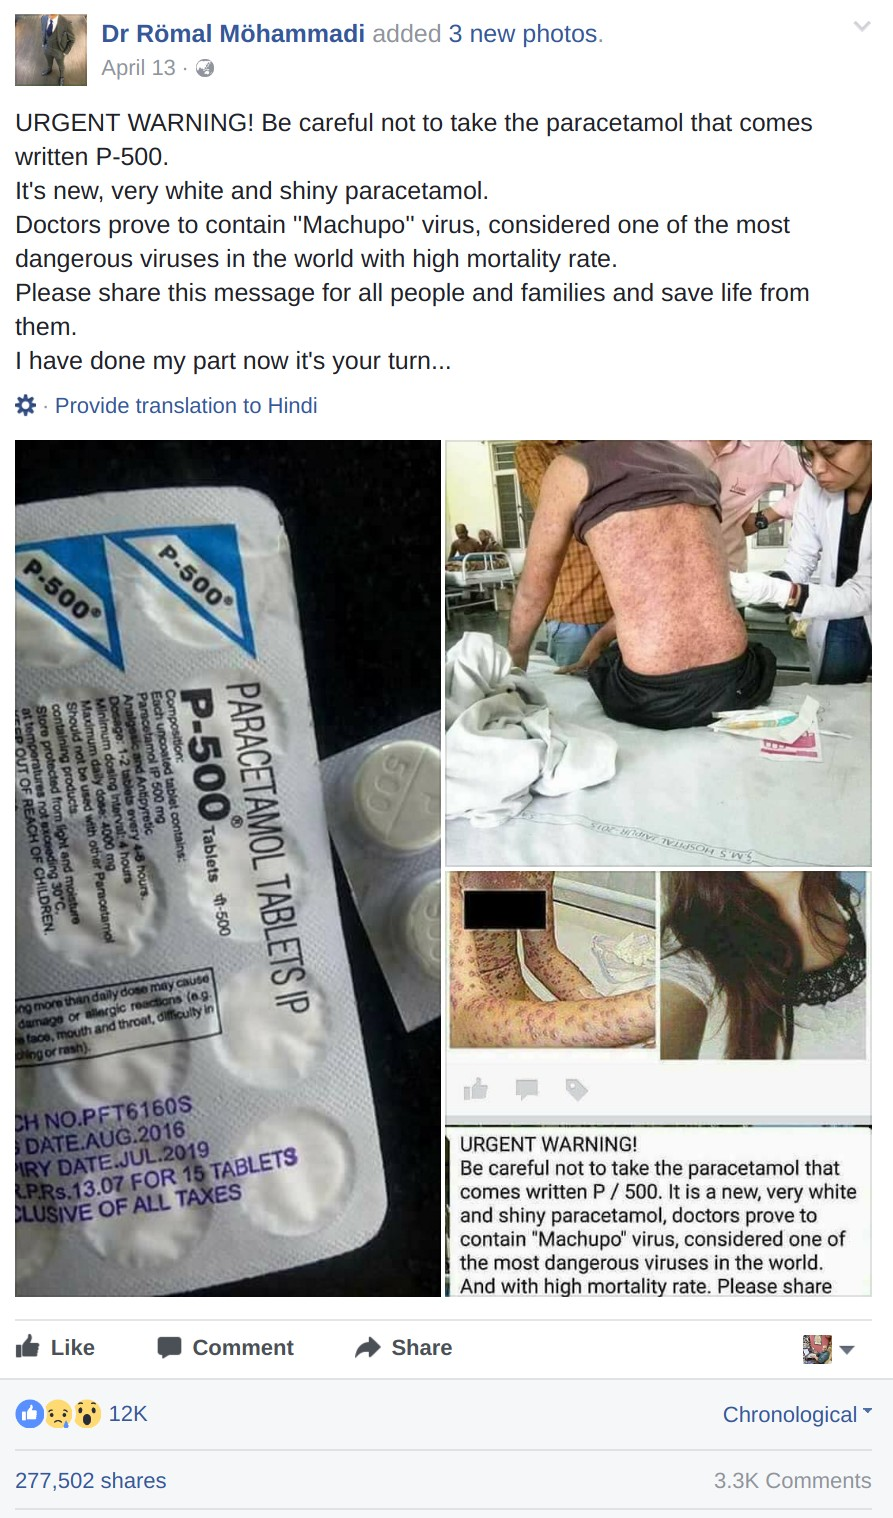 URGENT WARNING! Be careful not to take the paracetamol that comes written P-500. It's new, very white and shiny paracetamol. Doctors prove to contain ''Machupo'' virus, considered one of the most dangerous viruses in the world with high mortality rate. Please share this message for all people and families and save life from them.